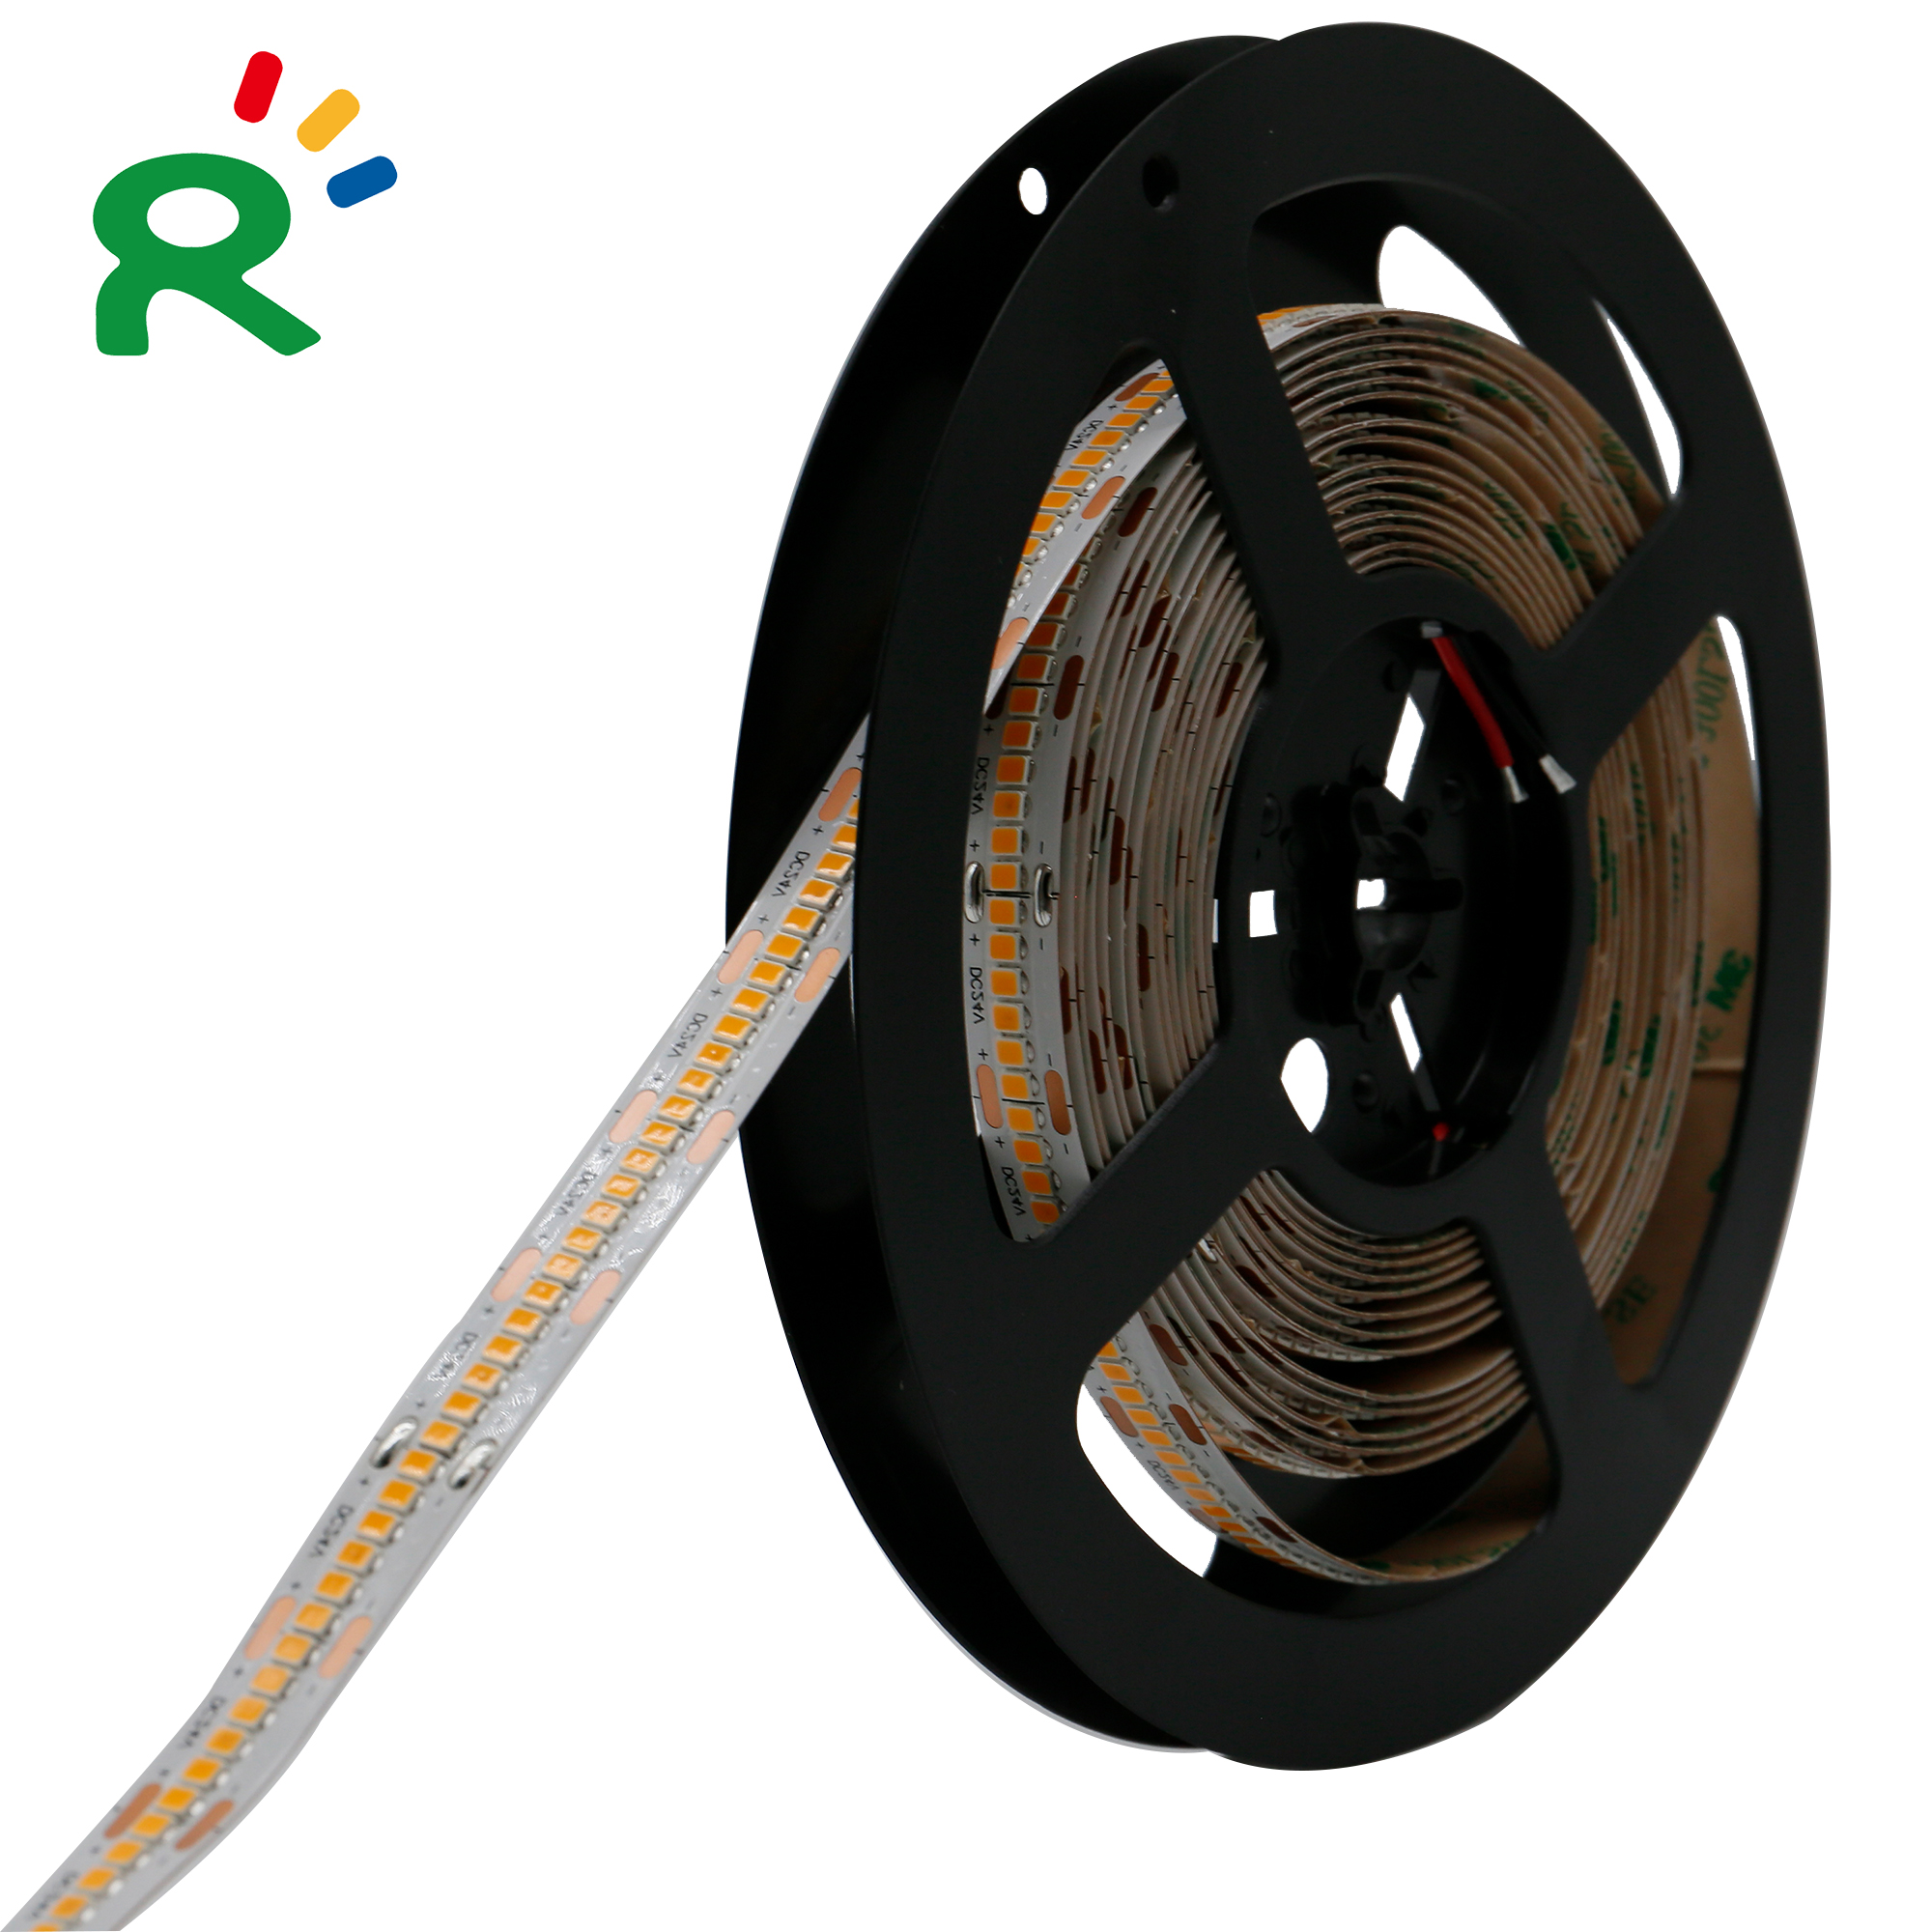 300LEDs/m SMD2835 Bulit-in IC LED Strip Light CE ROHS With High Density 12MM PCB